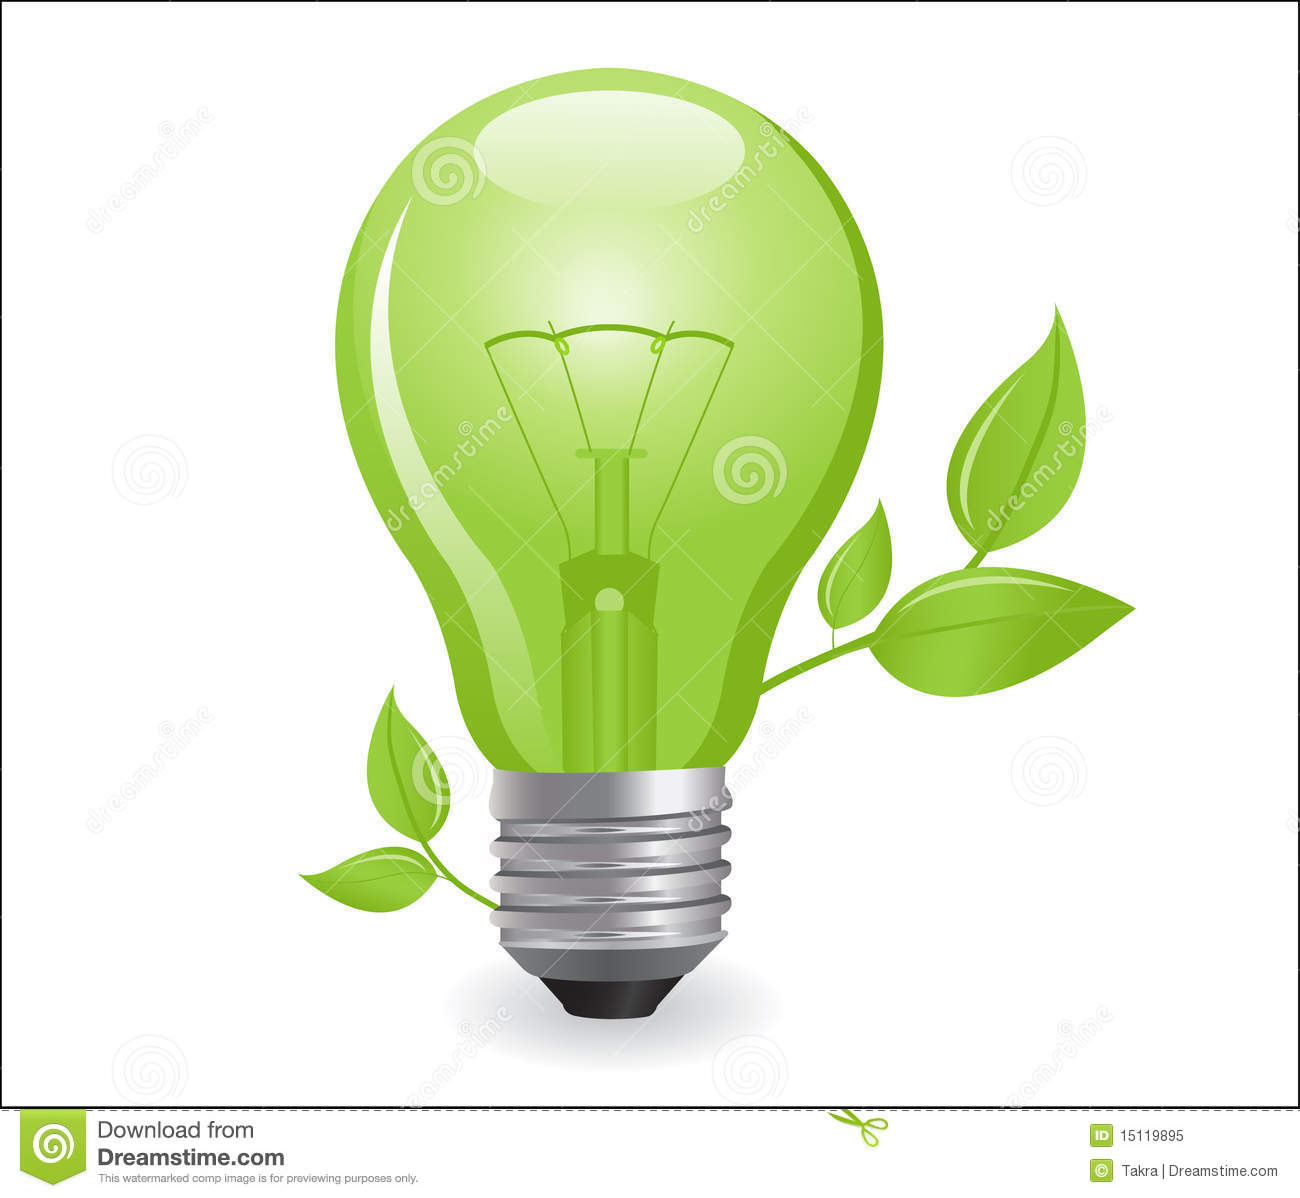 Incandescent Lamp Symbol Incandescent Electric Lamp Royalty Free Stock Photo